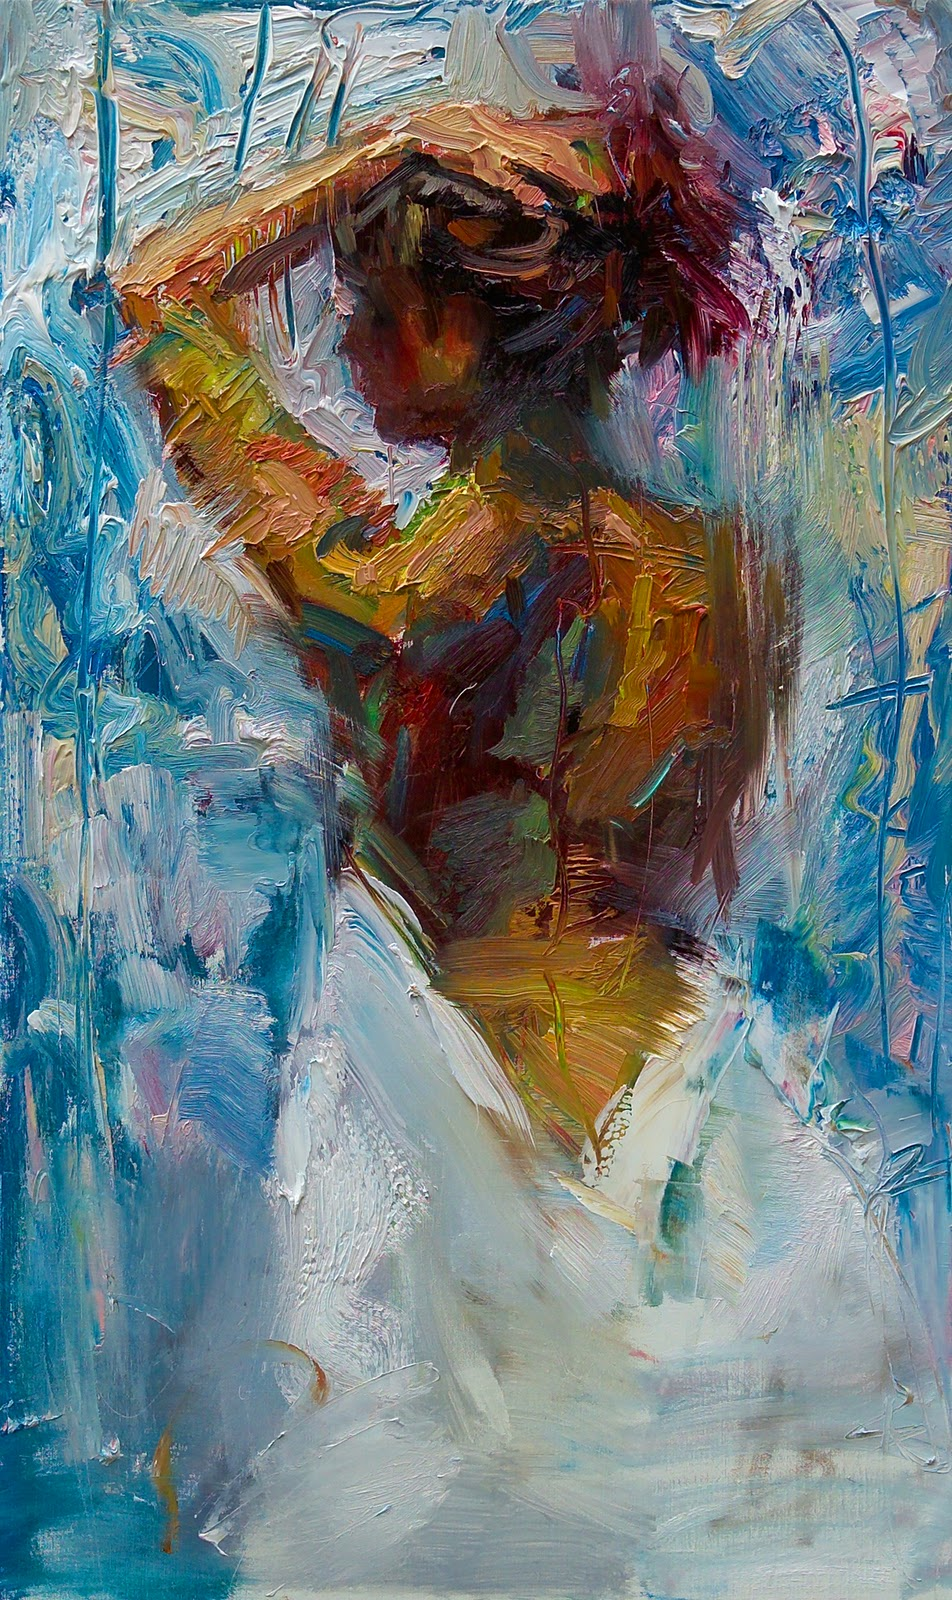 Reproductions of Henry Asencio's oil paintings,Purity